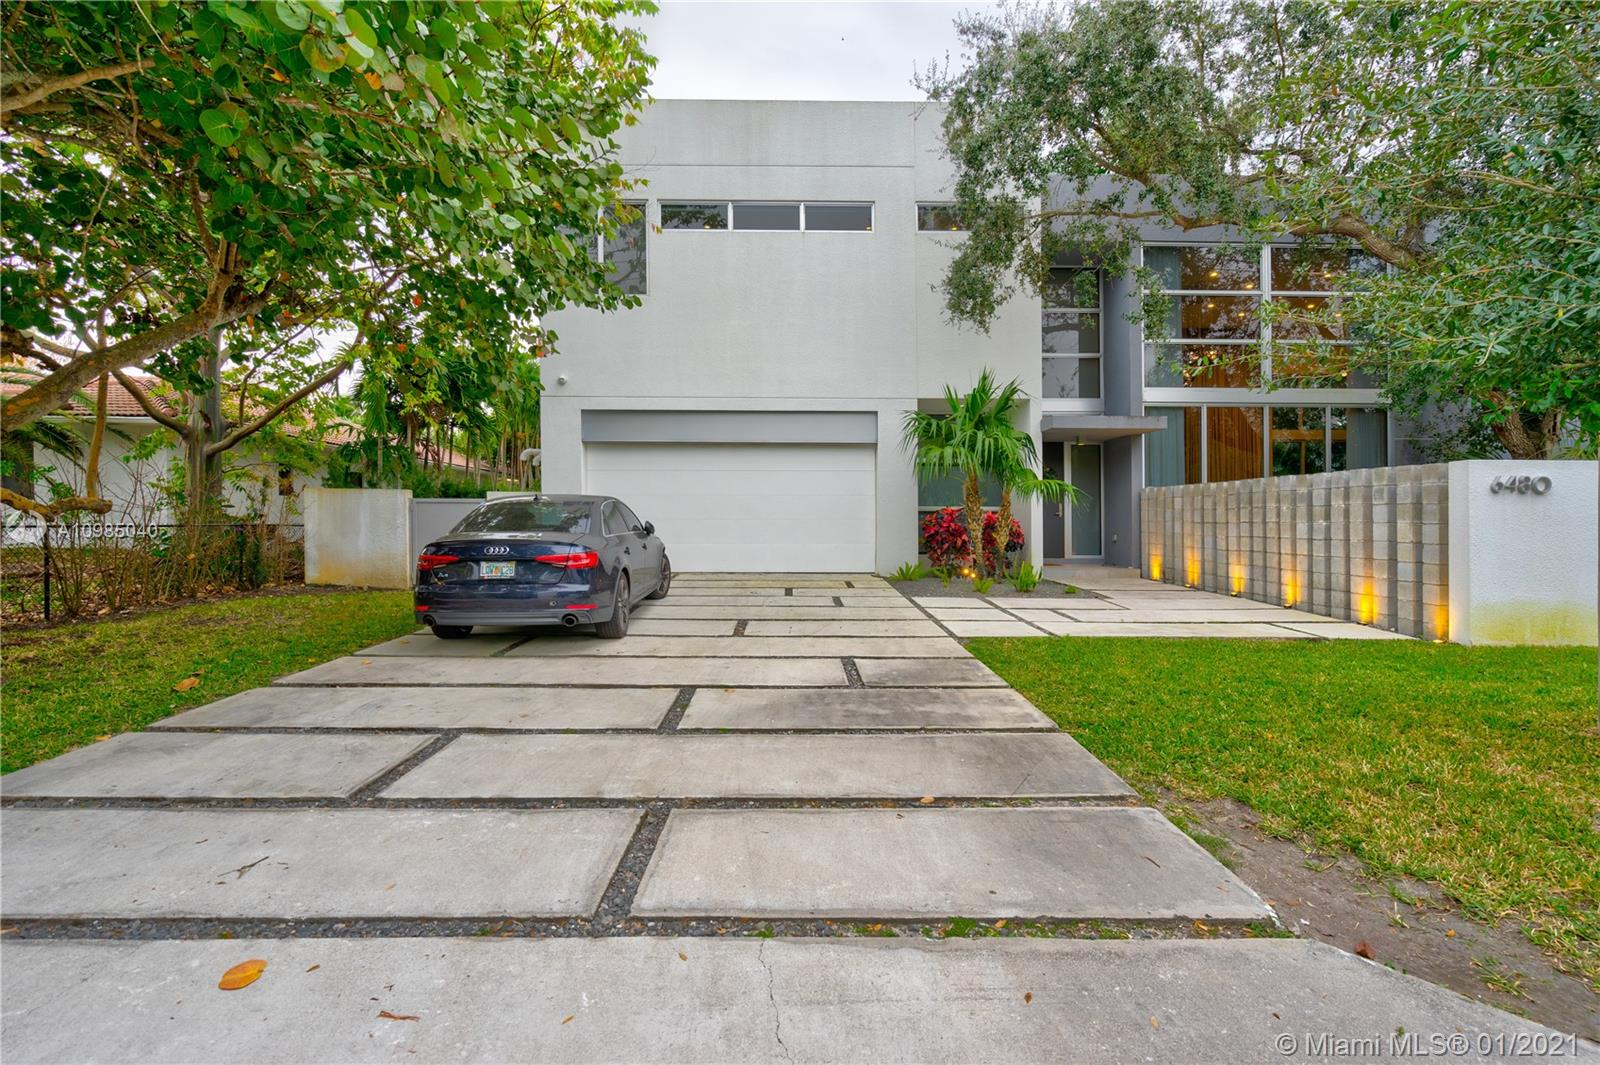 """Designed by acclaimed architect Roney Matey and part of """"The Setting"""" enclave, this luxurious property is found in the very attractive area of South Miami. Tall high pristine glass windows, complete with electronically-controlled curtains, together with a spacious floor plan fill and illuminate this 3 bedroom, 3.5 baths home with natural light. It includes a lavish master bedroom with a magnificent closet, as well as private balconies overlooking a vast backyard complete with an Olympic length pool. Italian-designed Mia Cucina kitchen with quartz countertops adjoining a glass cellar and a beautifully adorned dining room accentuate the beauty of this modern chic home."""